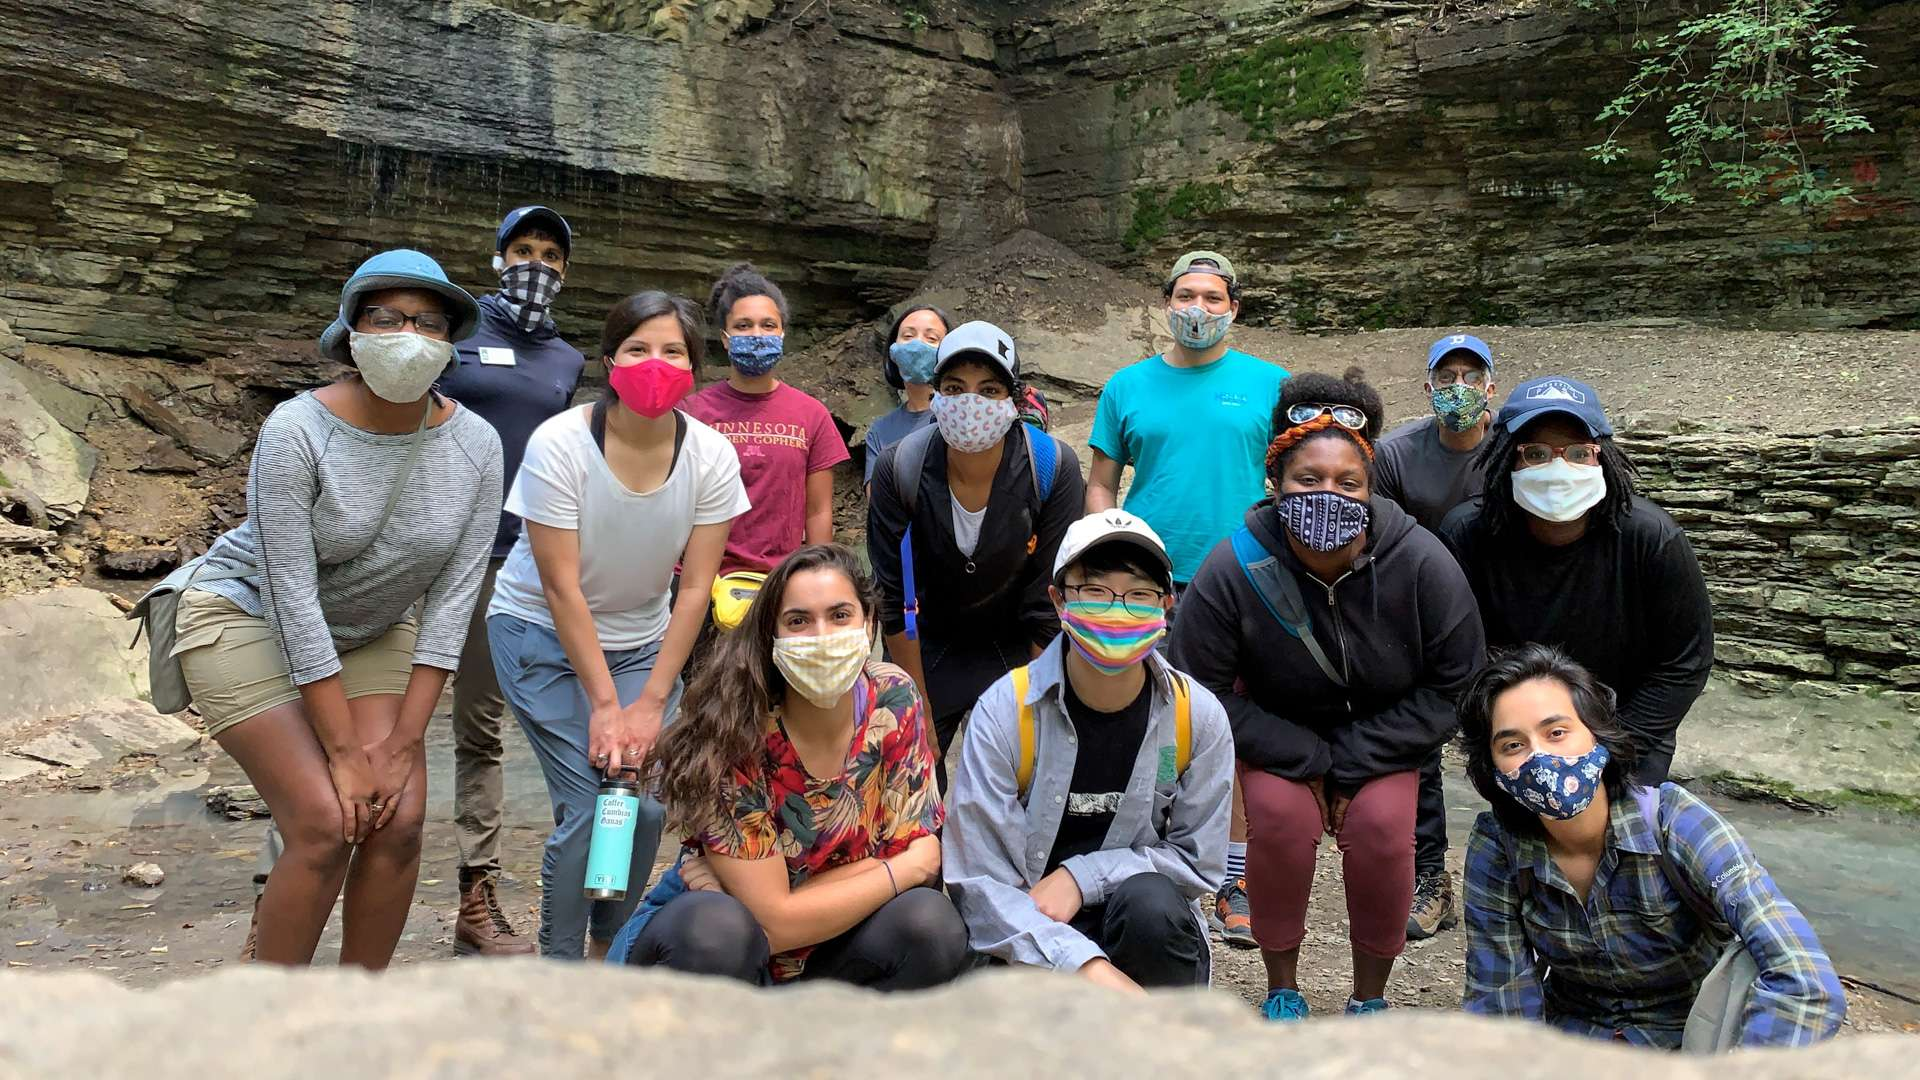 A group pf people wearing protective face masks are taking a break from hiking to gather for a group photo